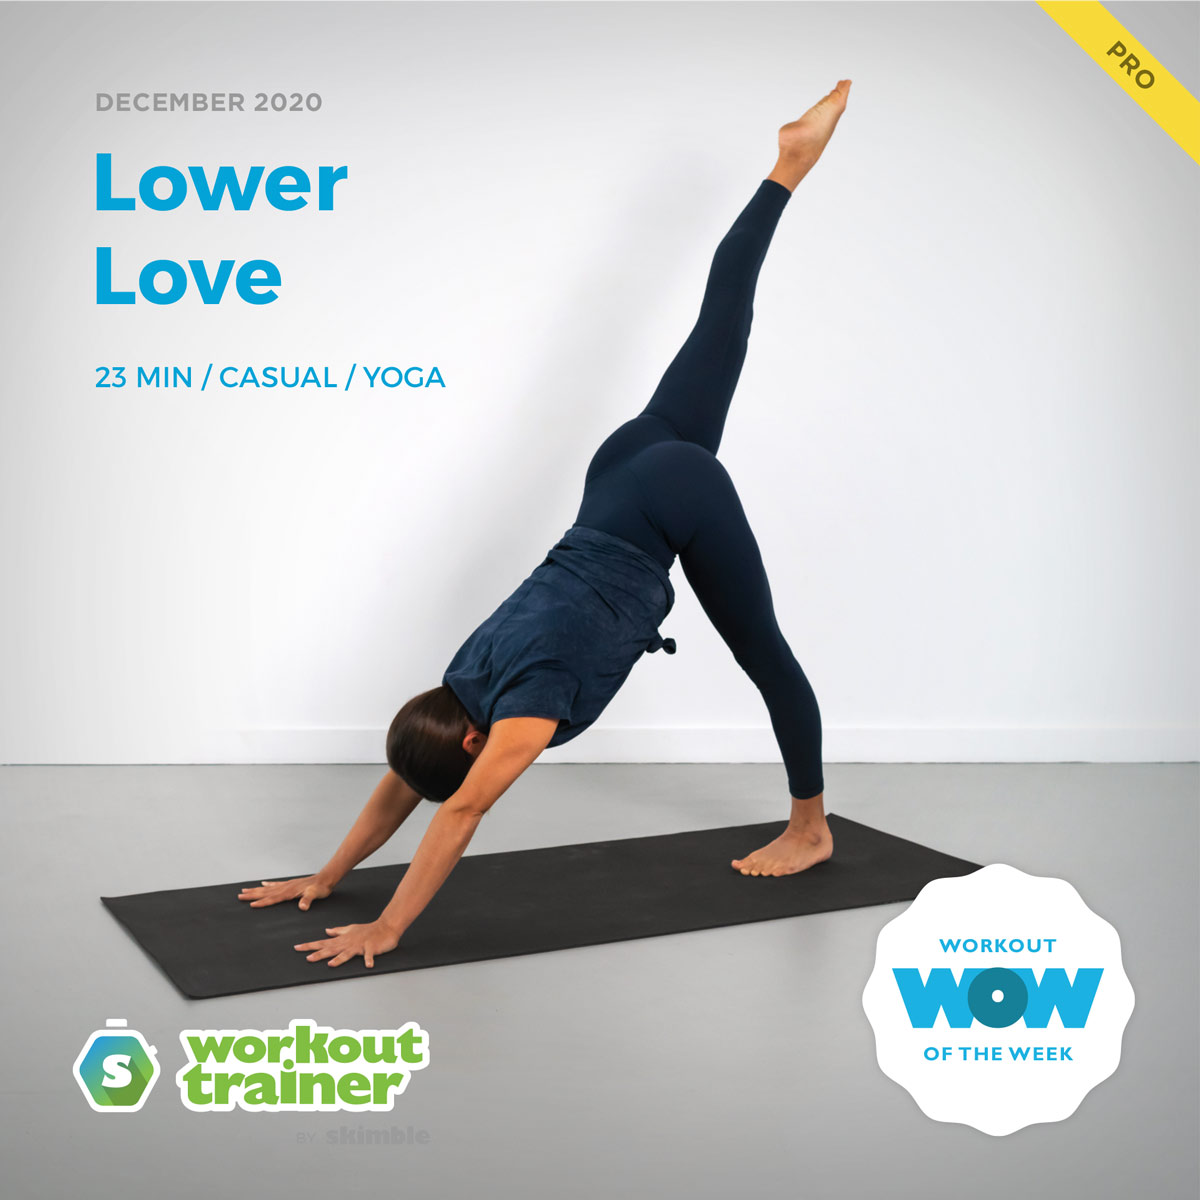 Female Yoga Instructor demonstrating Downward Dog with Right Leg Raise pose